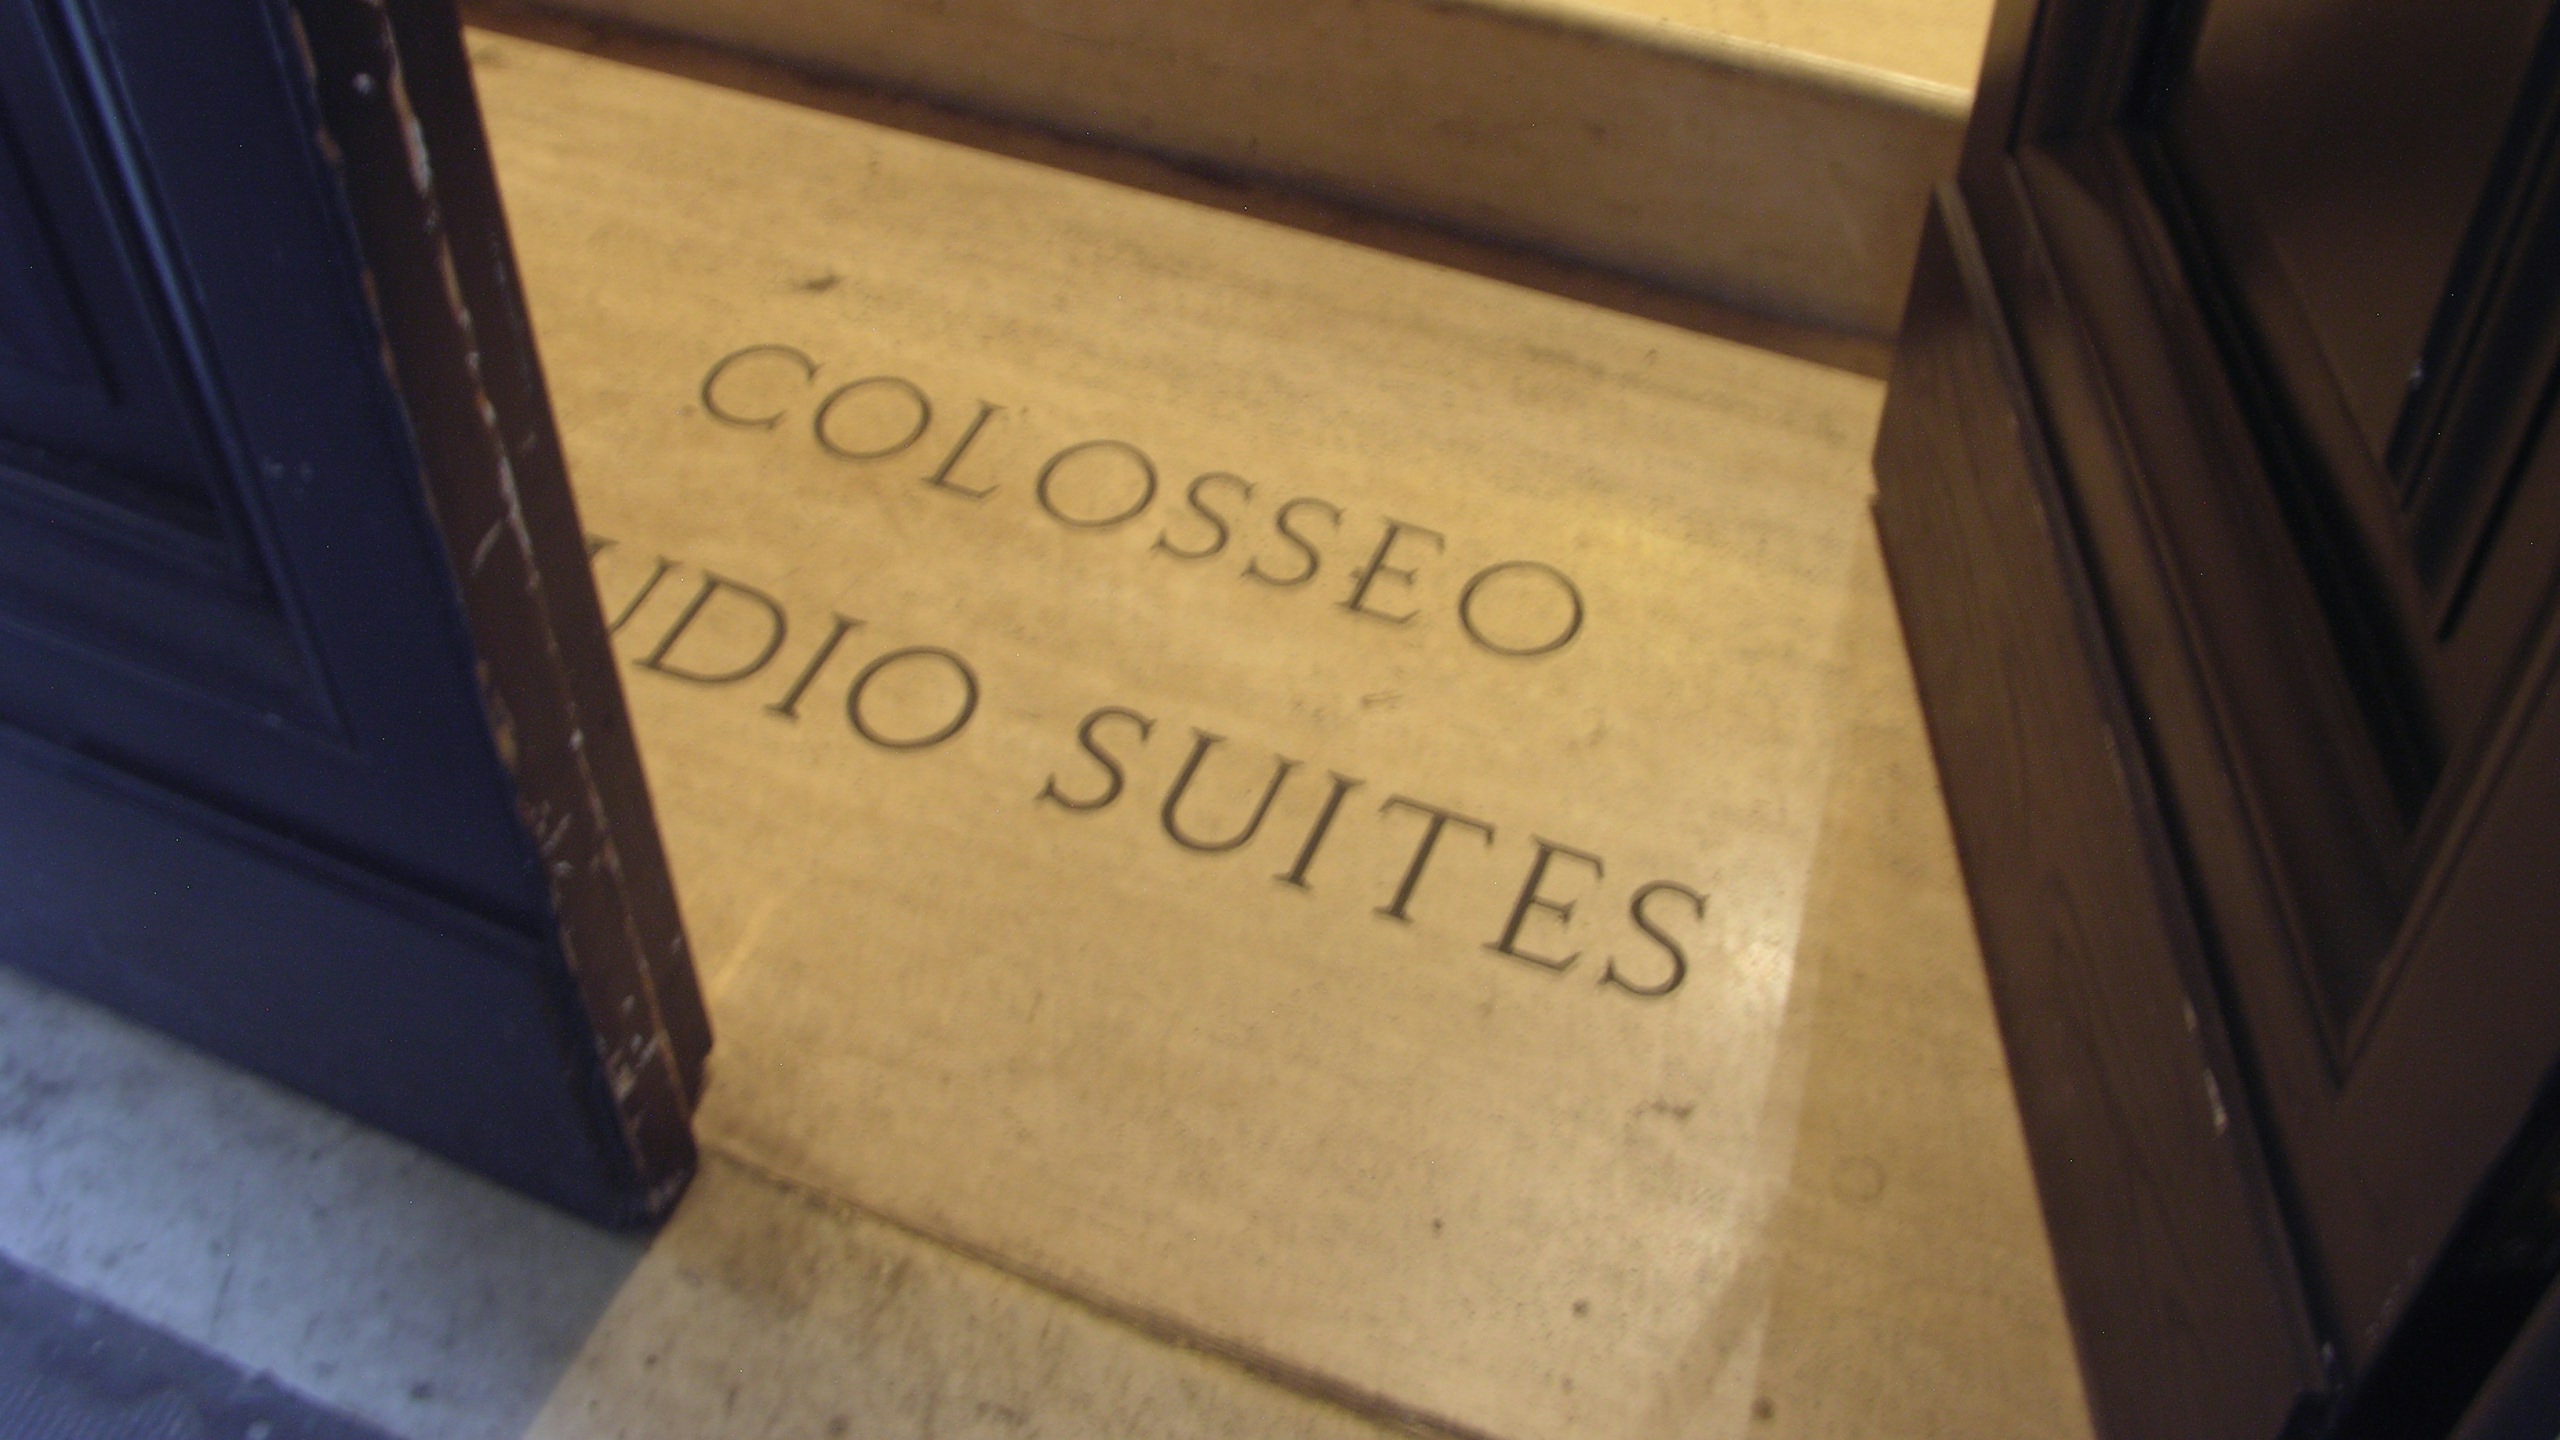 colosseo-suites-rome-externo-05